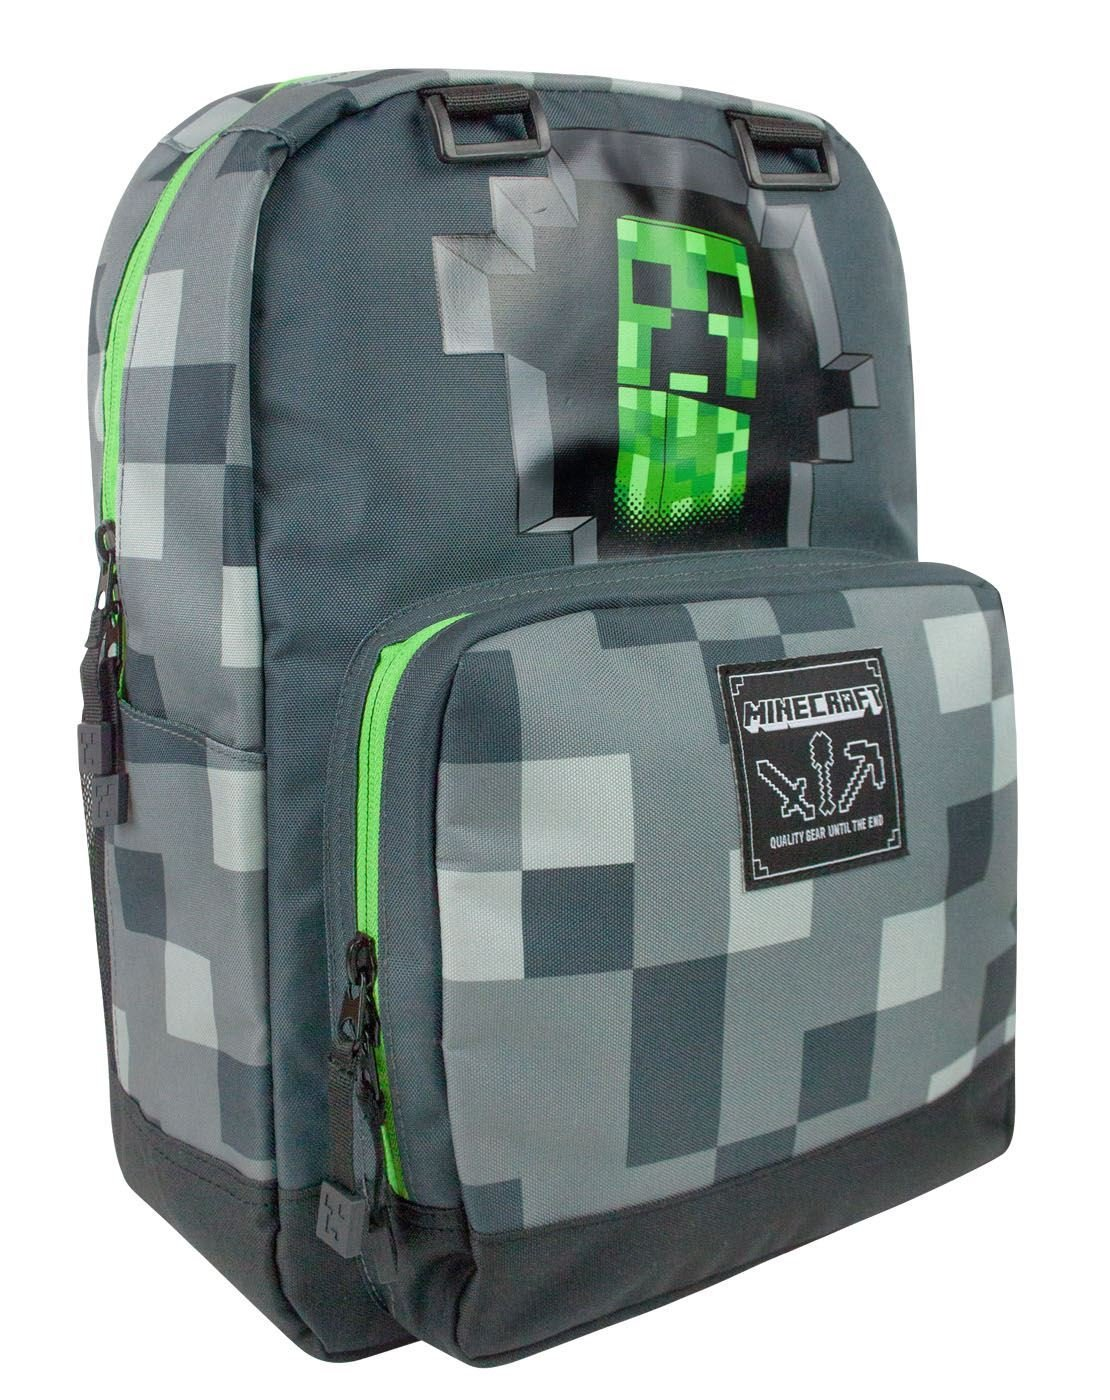 Minecraft Creeper Inside Backpack Fashion UK